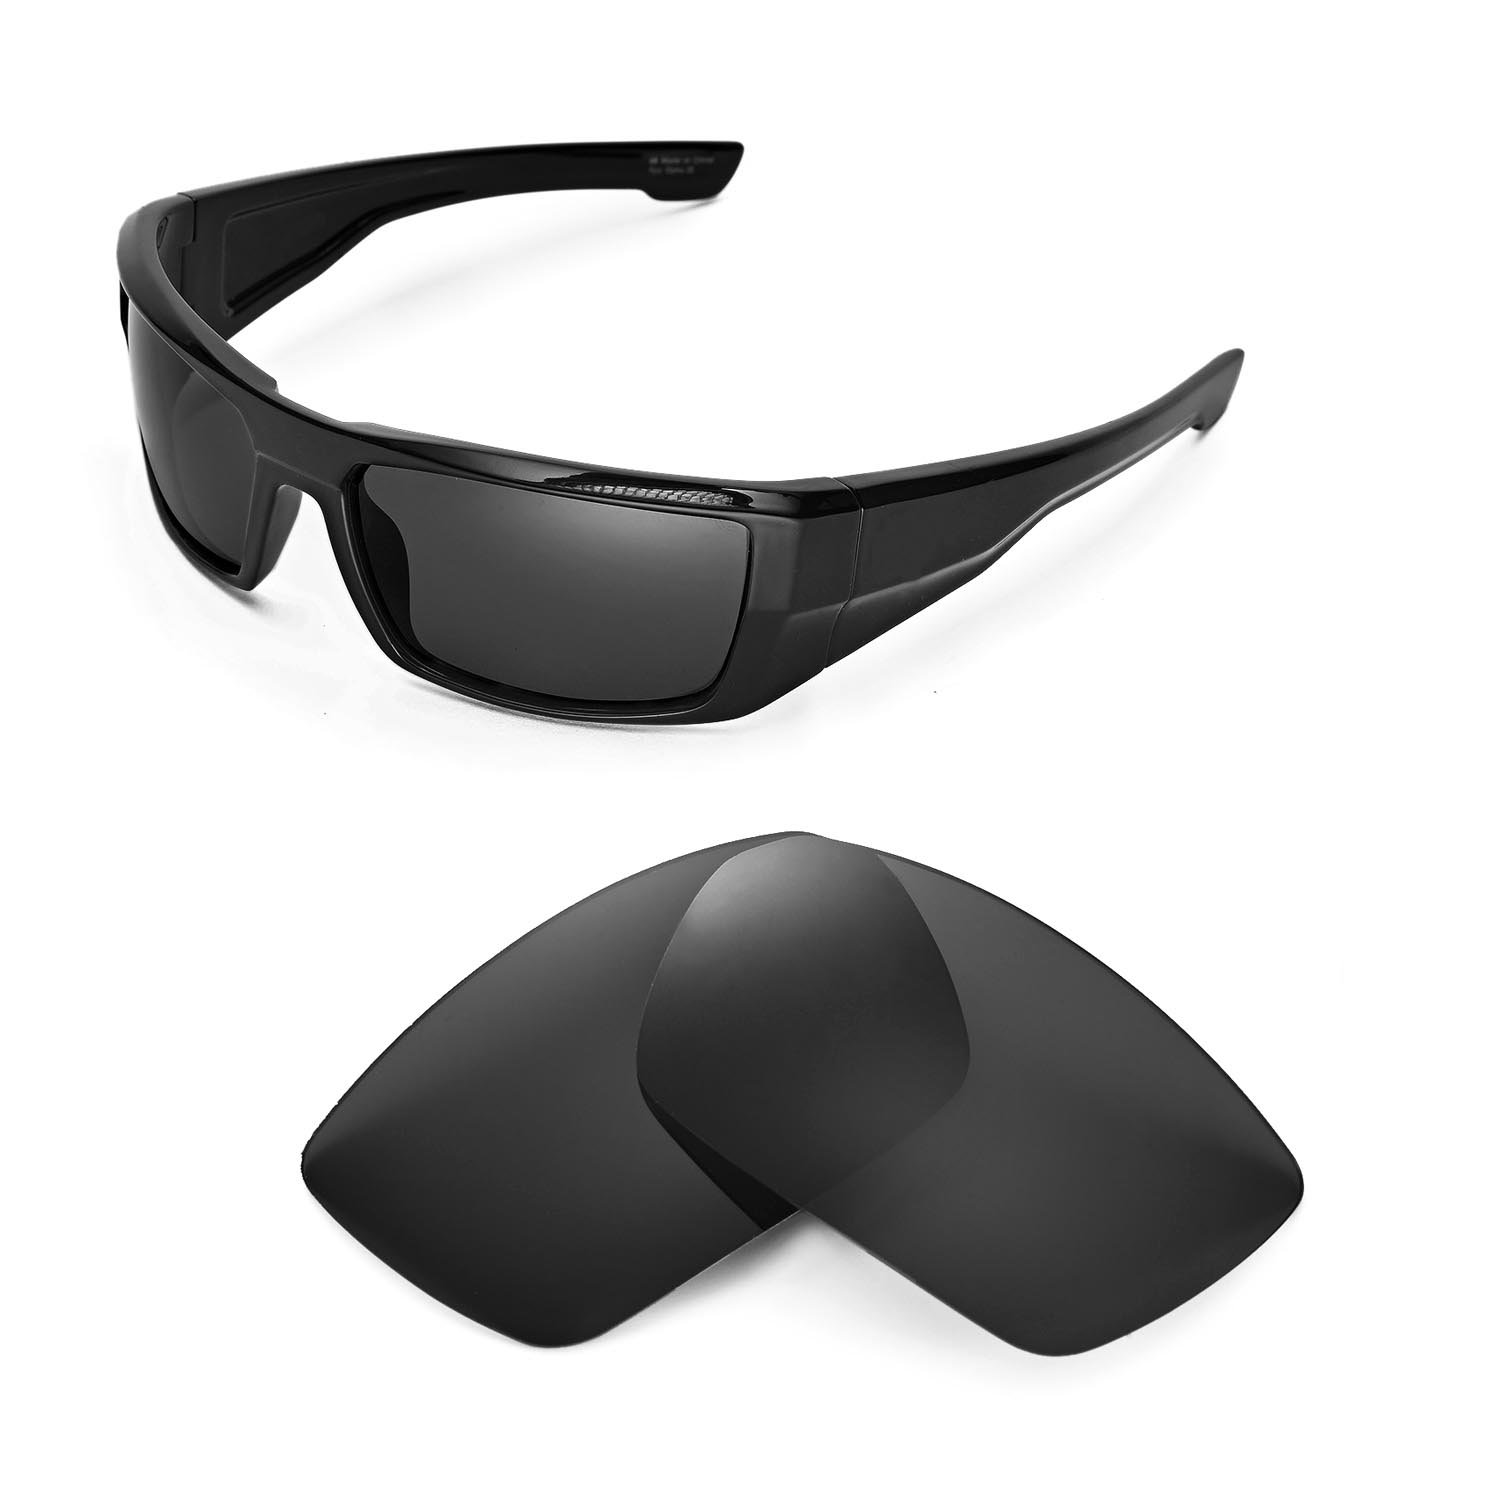 77bc1ff4ae Amazon.com  Walleva Replacement Lenses for Spy Optic DIRK Sunglasses -  Multiple Options Available(Black - Polirazed)  Sports   Outdoors